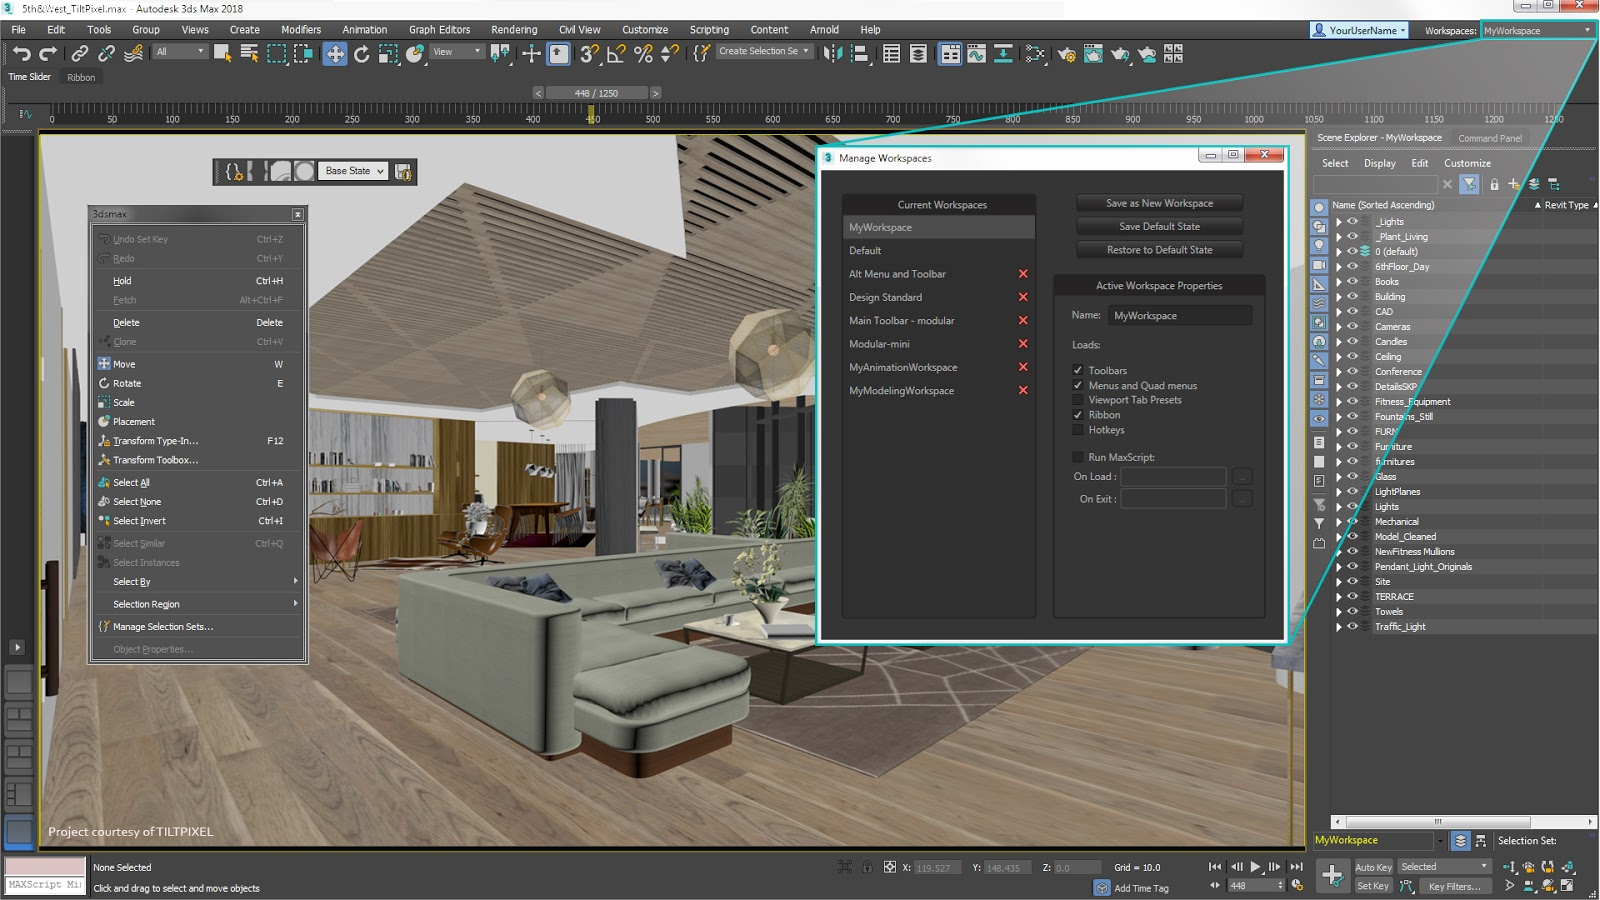 Autodesk 3ds Max 2018 | Computer Graphics Daily News